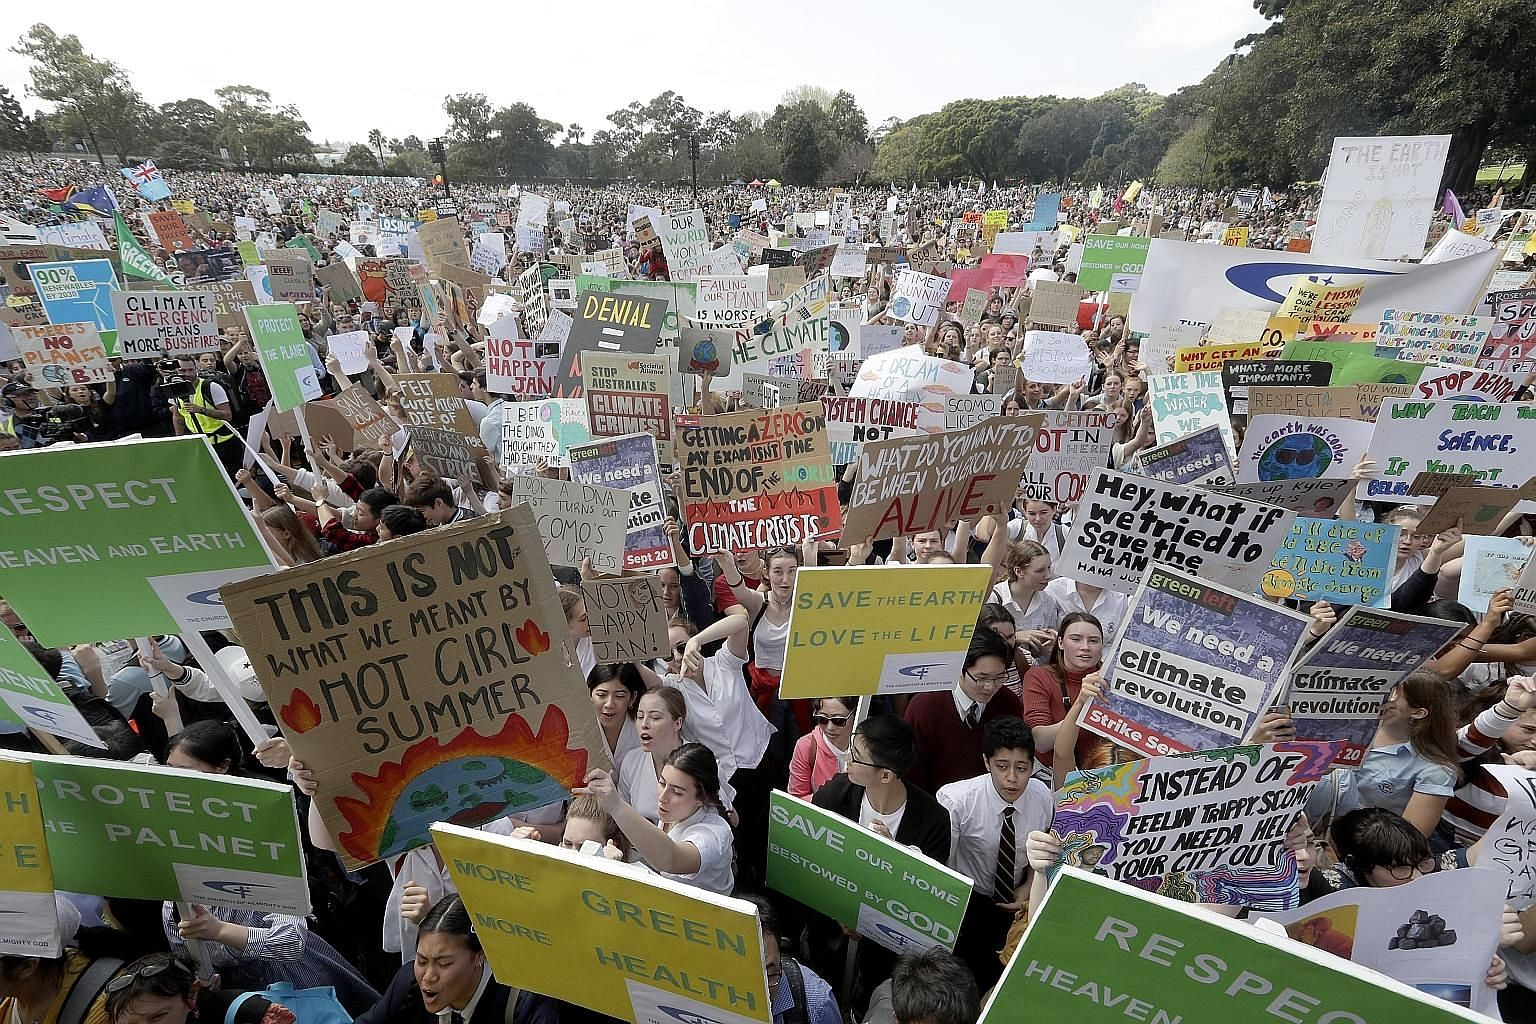 THAILAND: Activists playing dead as part of a demonstration near the Ministry of Natural Resources and Environment's office in Bangkok. JAPAN: Participants marching at an event to mark the day of global climate strikes in Tokyo. AUSTRALIA: Thousands